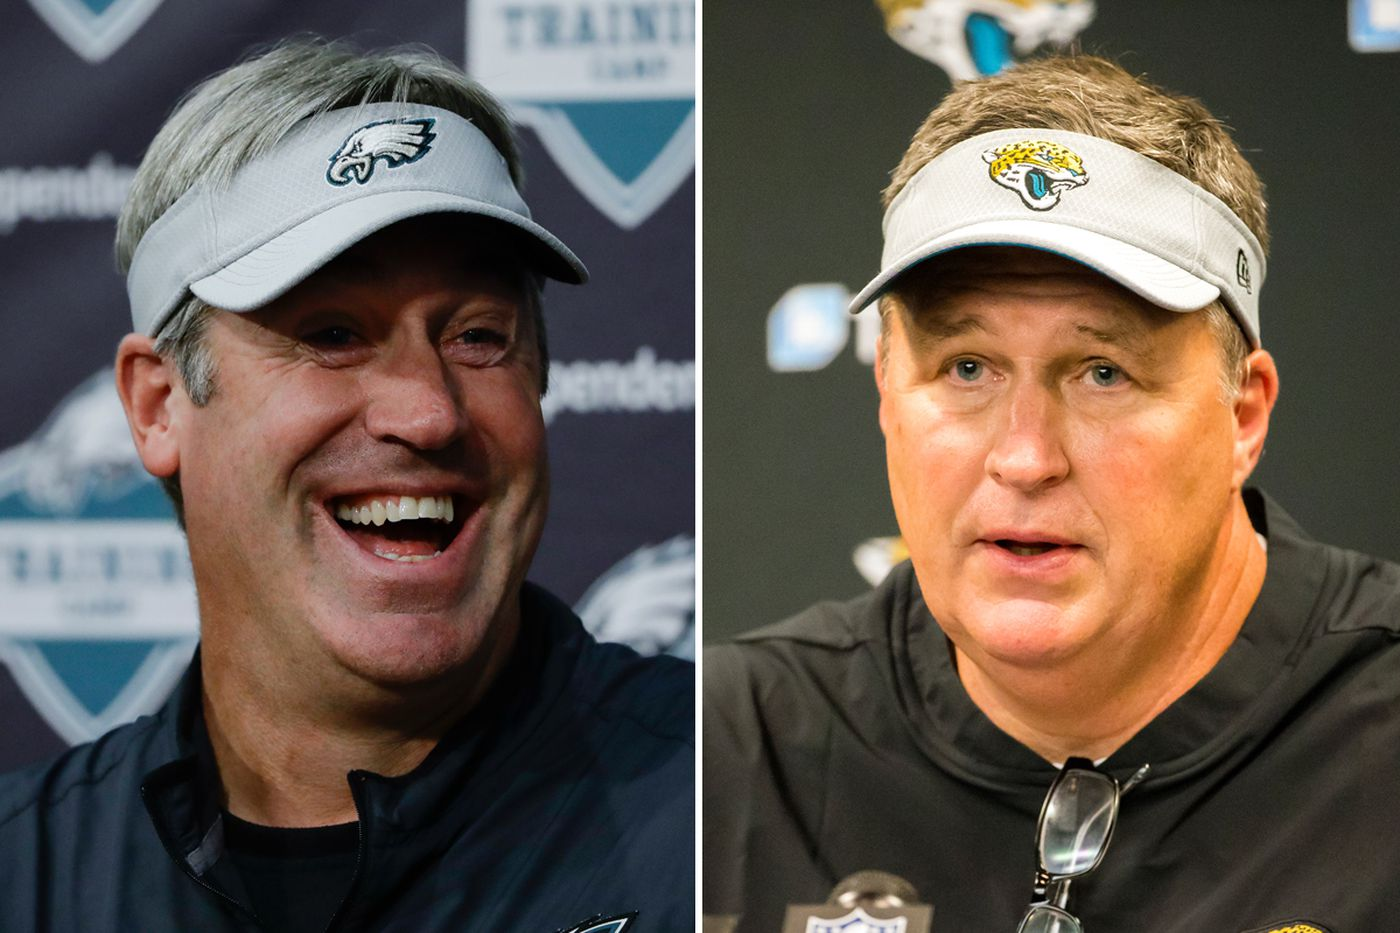 Jaguars coach Doug Marrone reacts to getting ripped by Doug Pederson